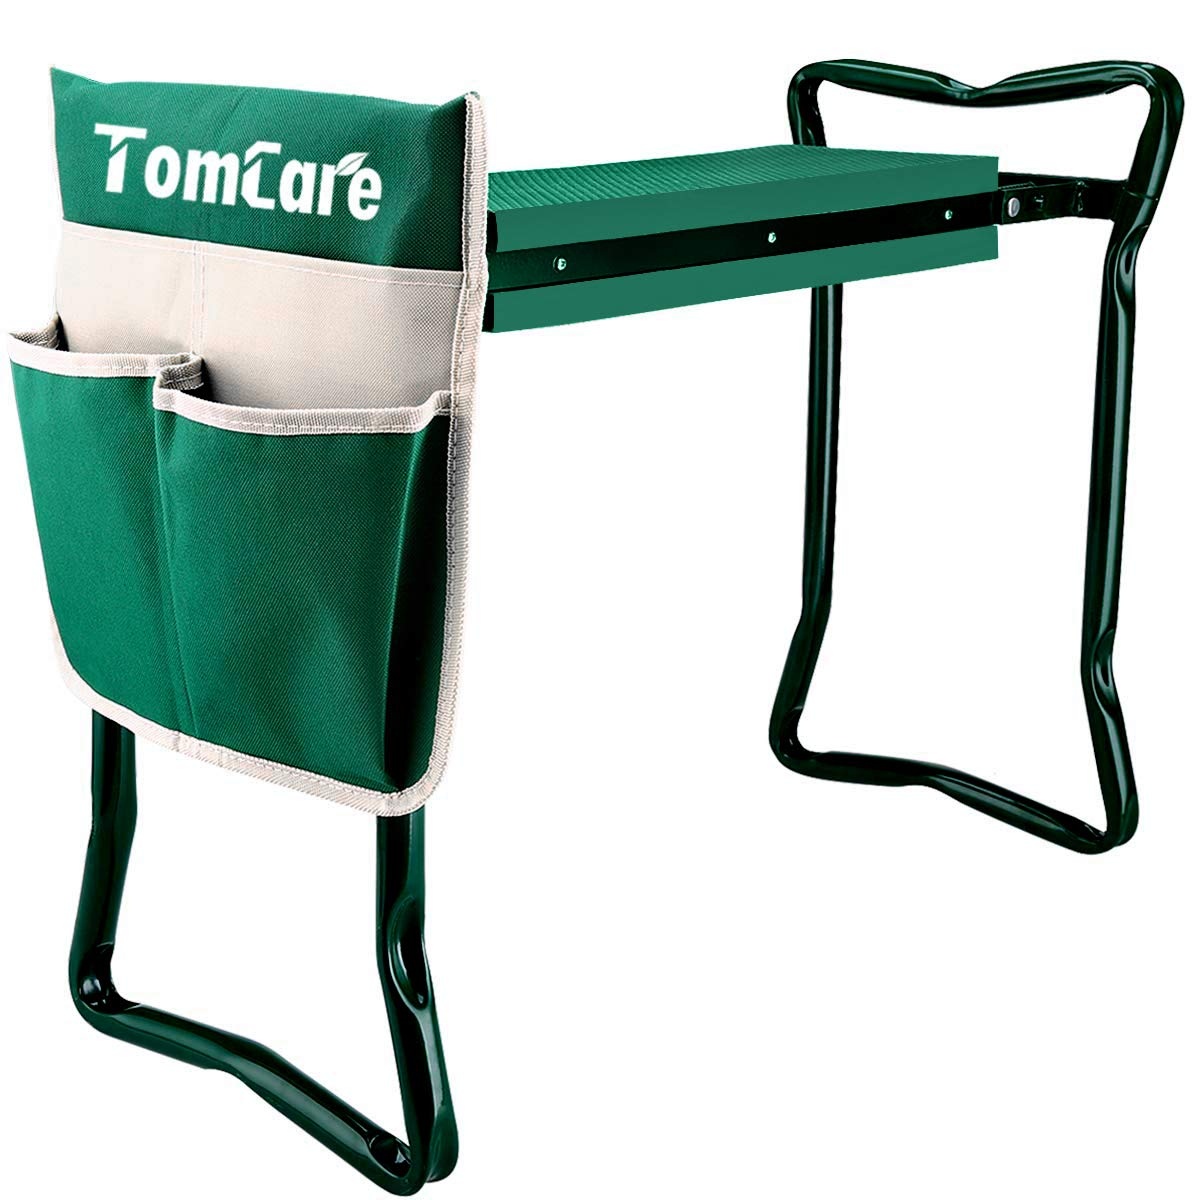 TomCare Garden Kneeler Seat Garden Bench Garden Stools Foldable Stool with Tool Bag Pouch EVA Foam Pad Outdoor Portable Kneeler for Gardening Large-21.65 x 10.62 x 18.89 ,Green